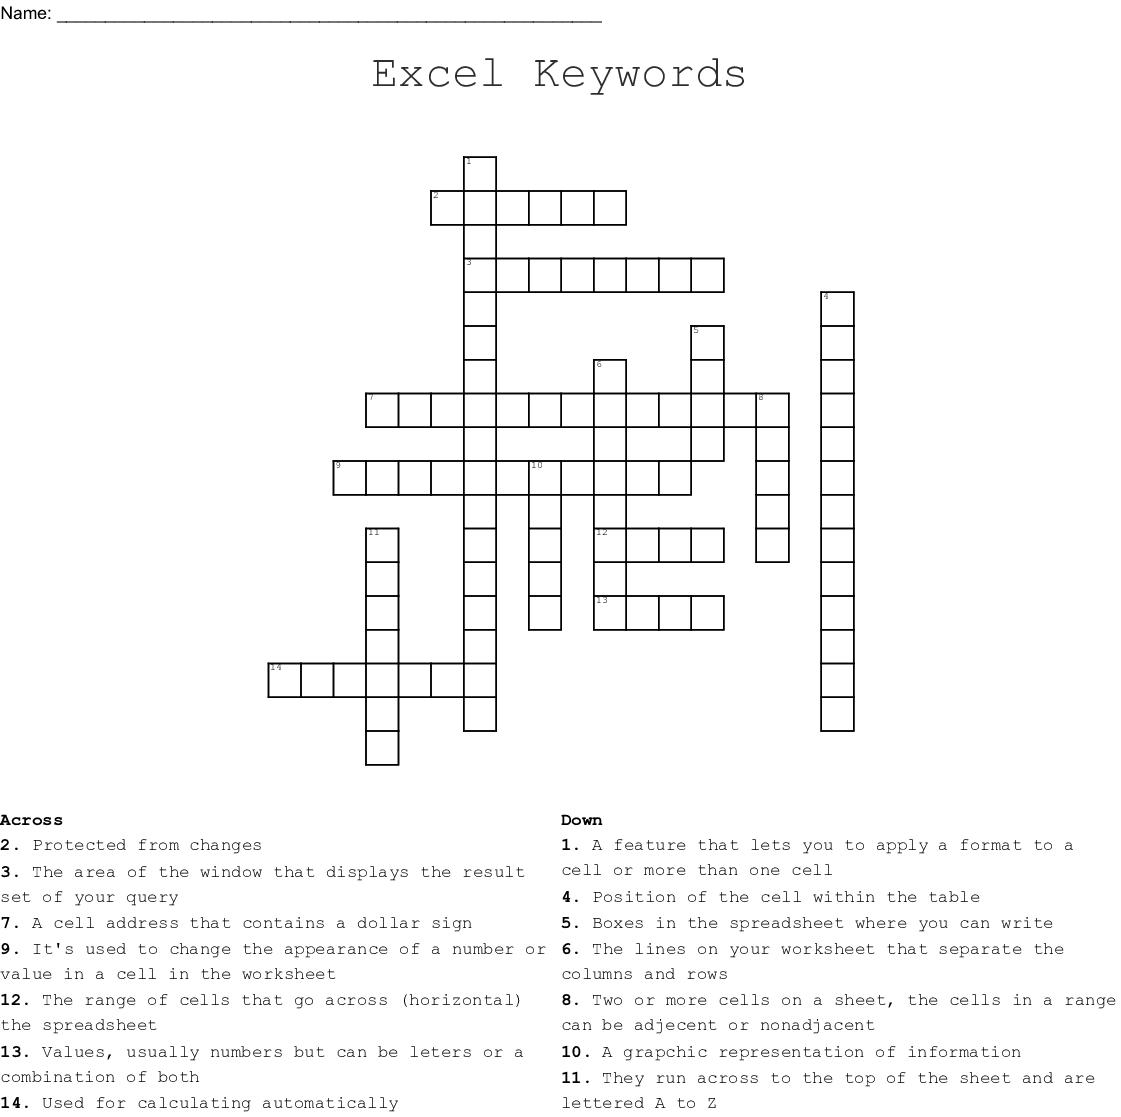 Excel Keywords Crossword